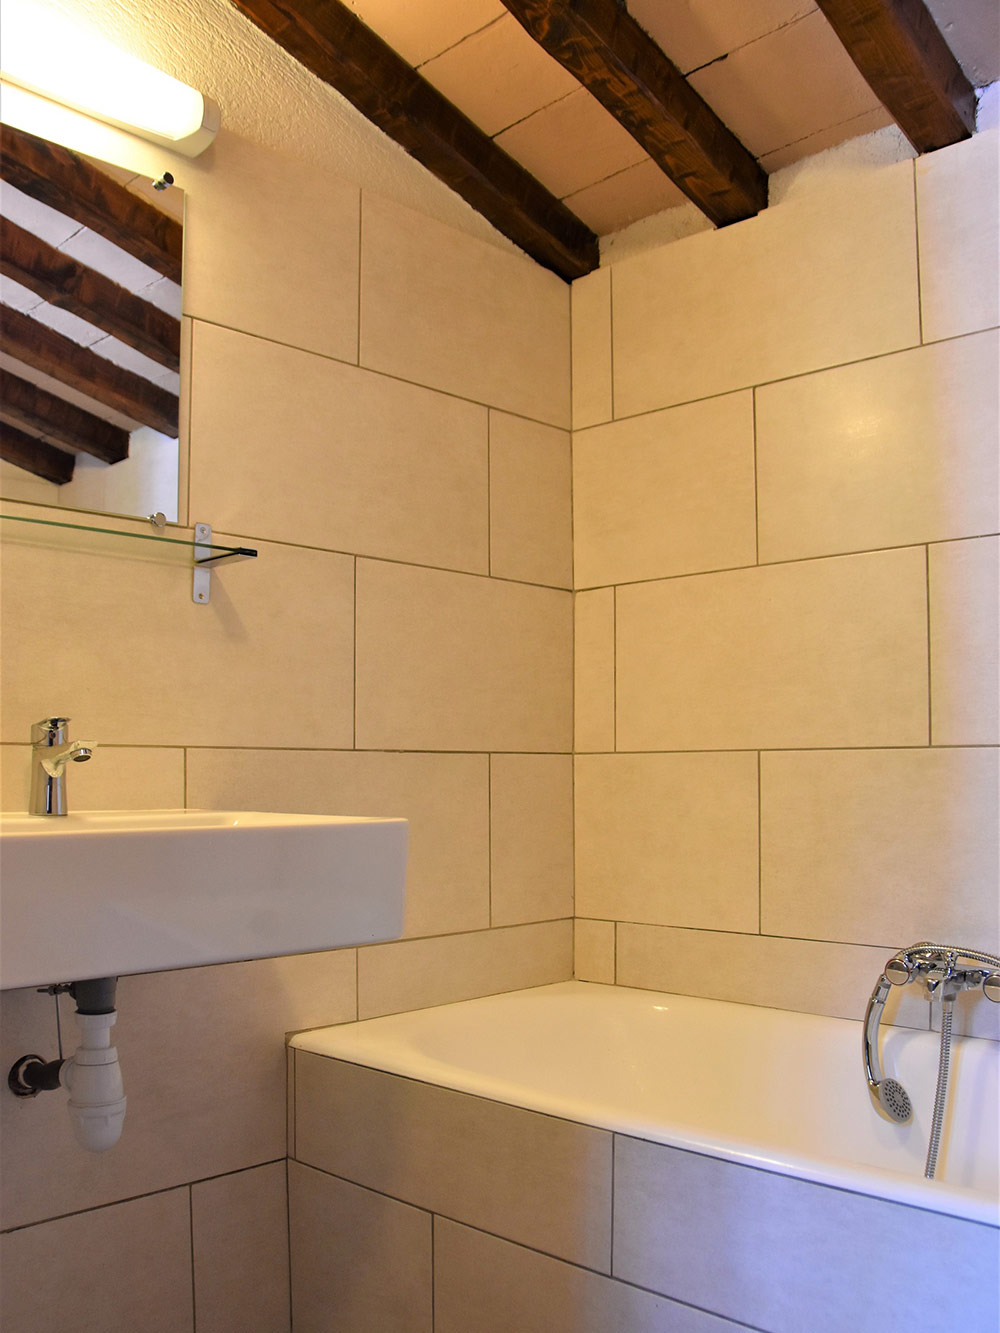 Studio d'Augias 2: bathroom